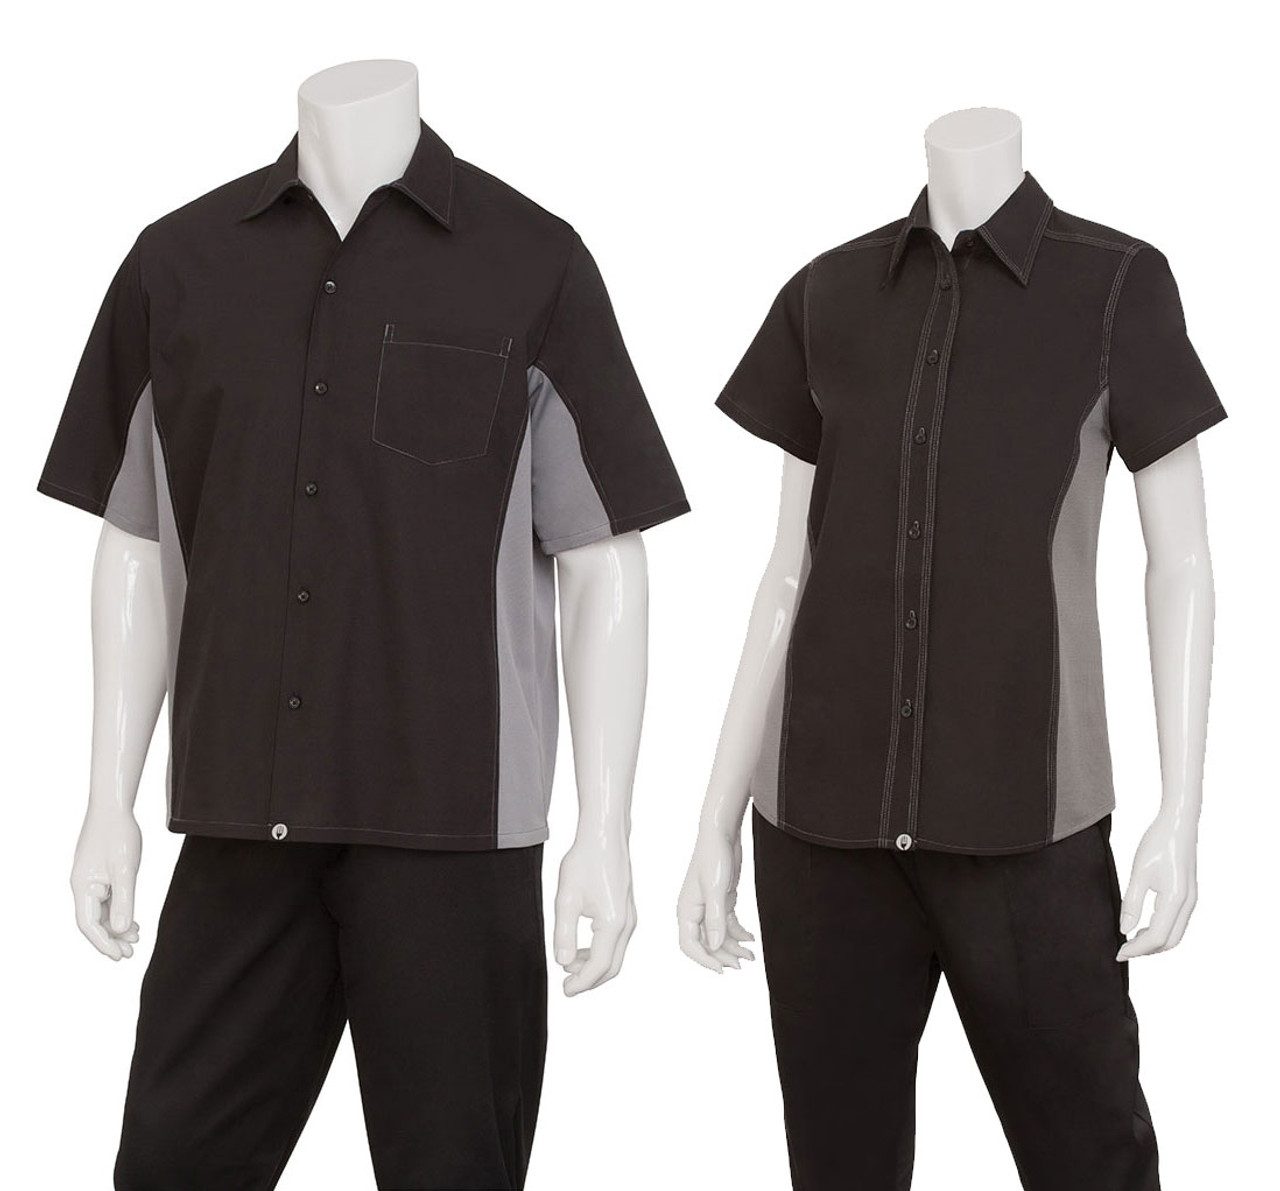 Men and women sizes for this uniform shirt